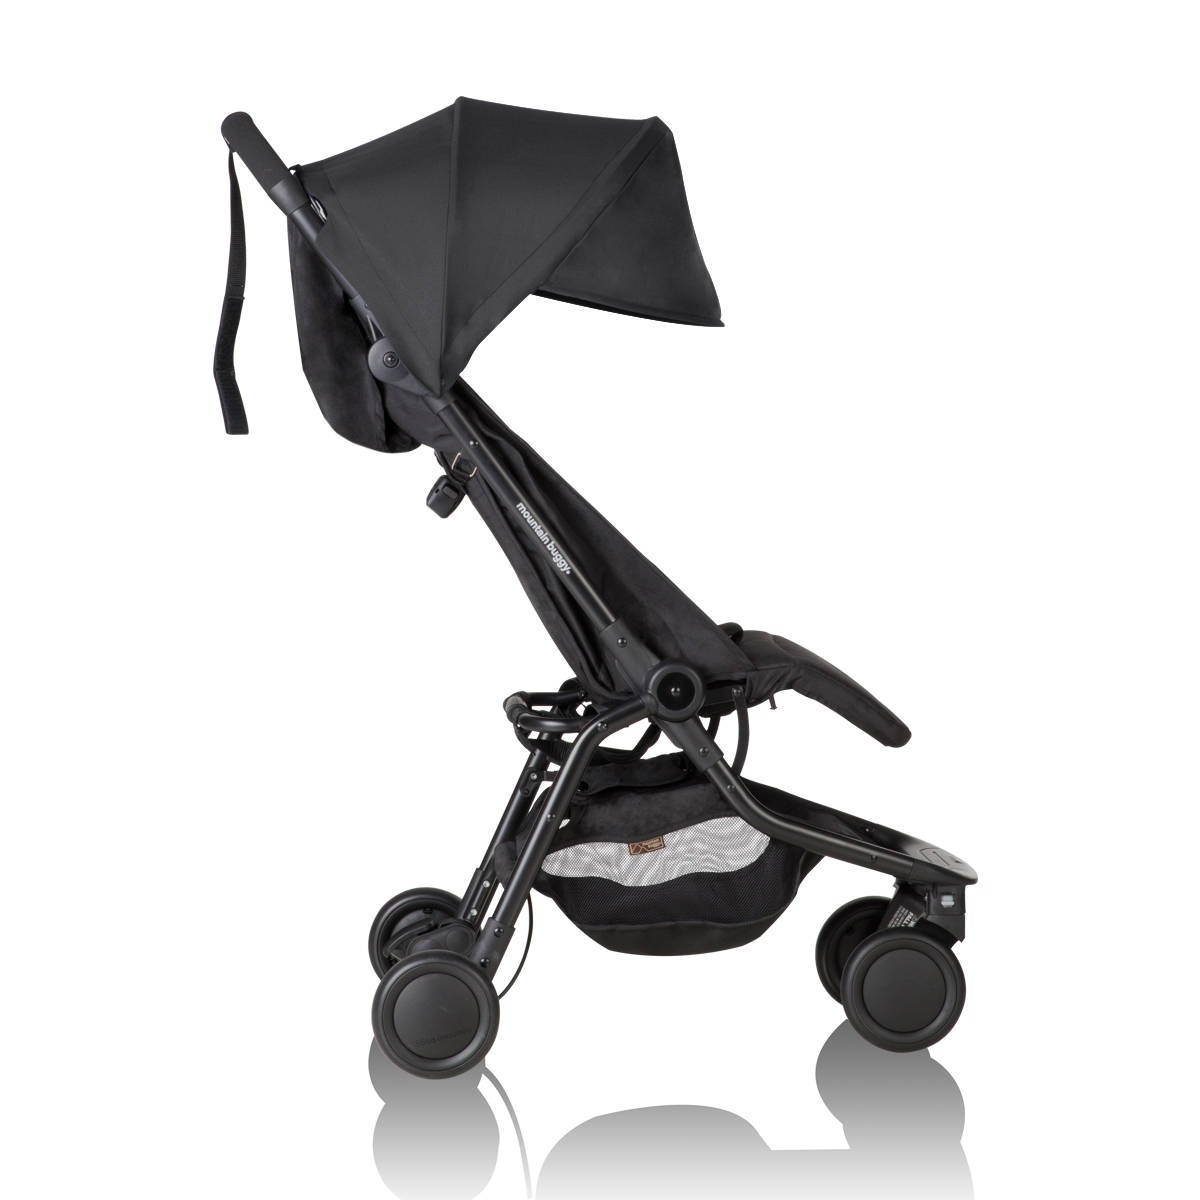 Mountain Buggy Nano V2 matkaratas - Matkarattaat - 4587778545 - 4